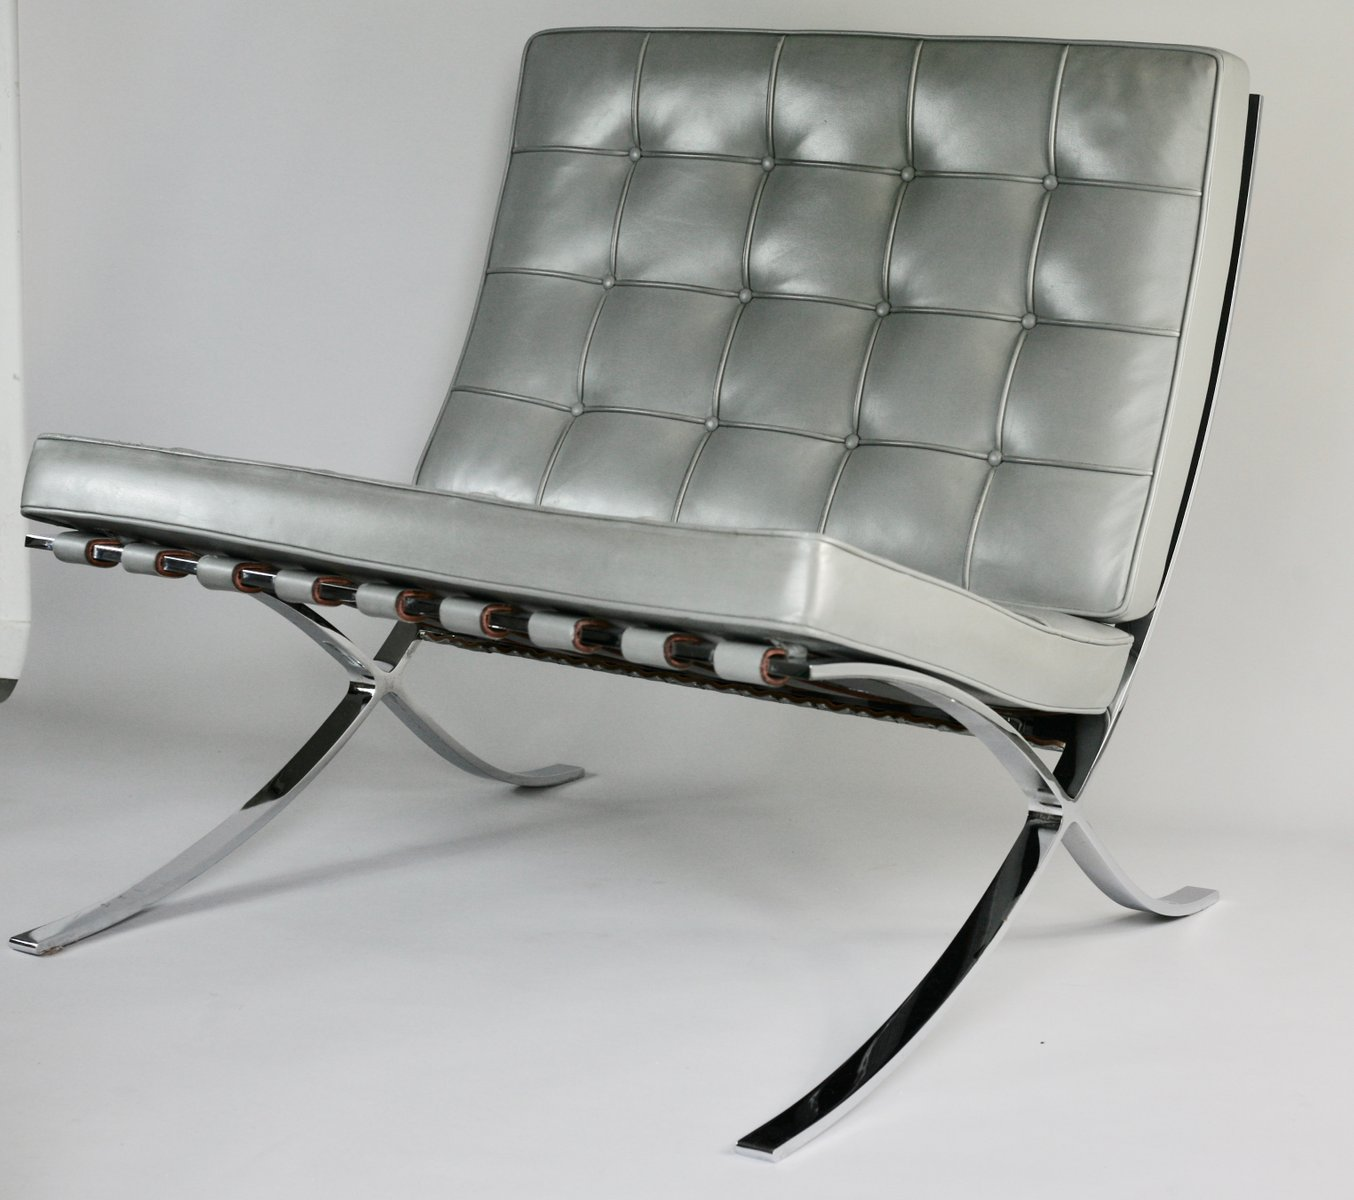 Barcelona Lounge Chair By Mies Van Der Rohe For Knoll